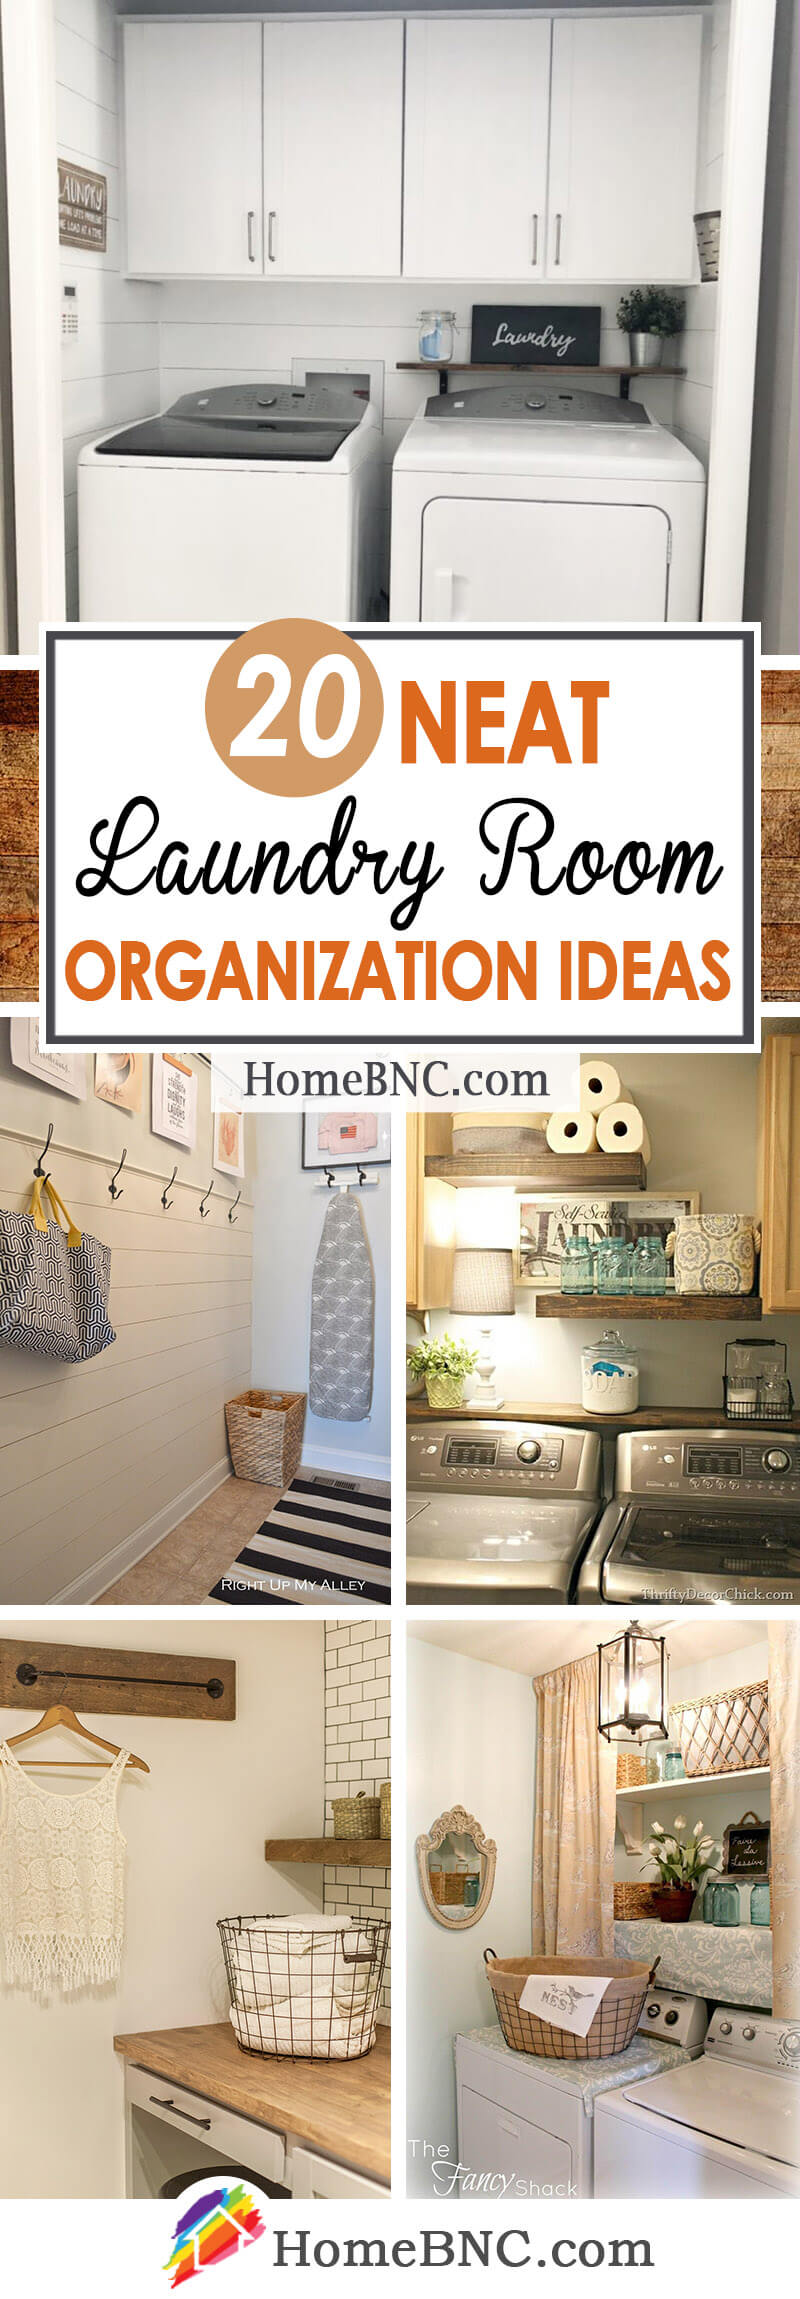 20 organization ideas that will make you fall in love with your laundry room